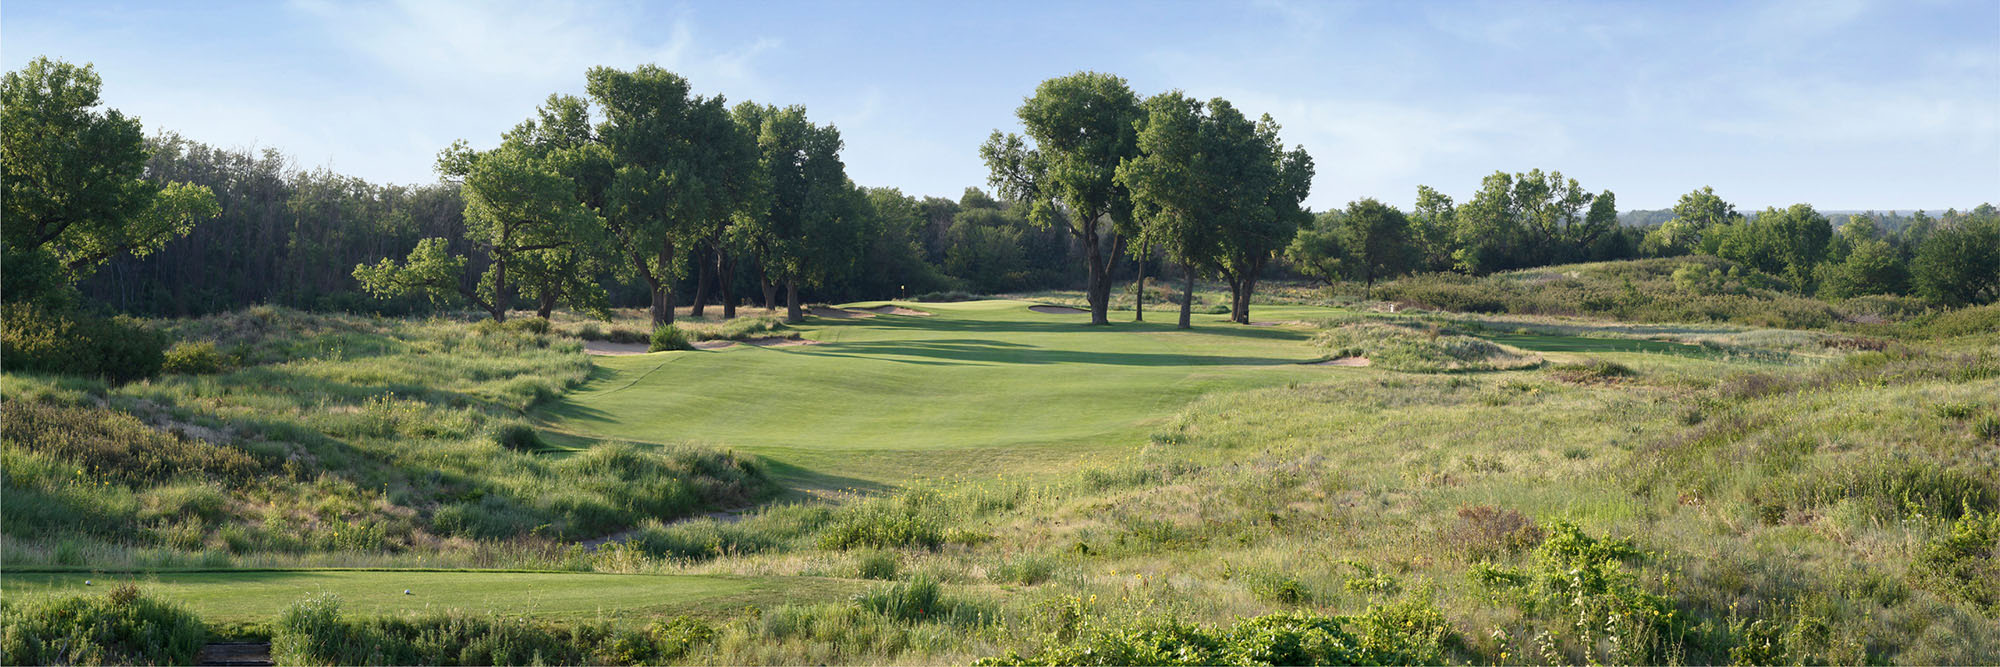 Golf Course Image - Prairie Dunes Country Club No. 12